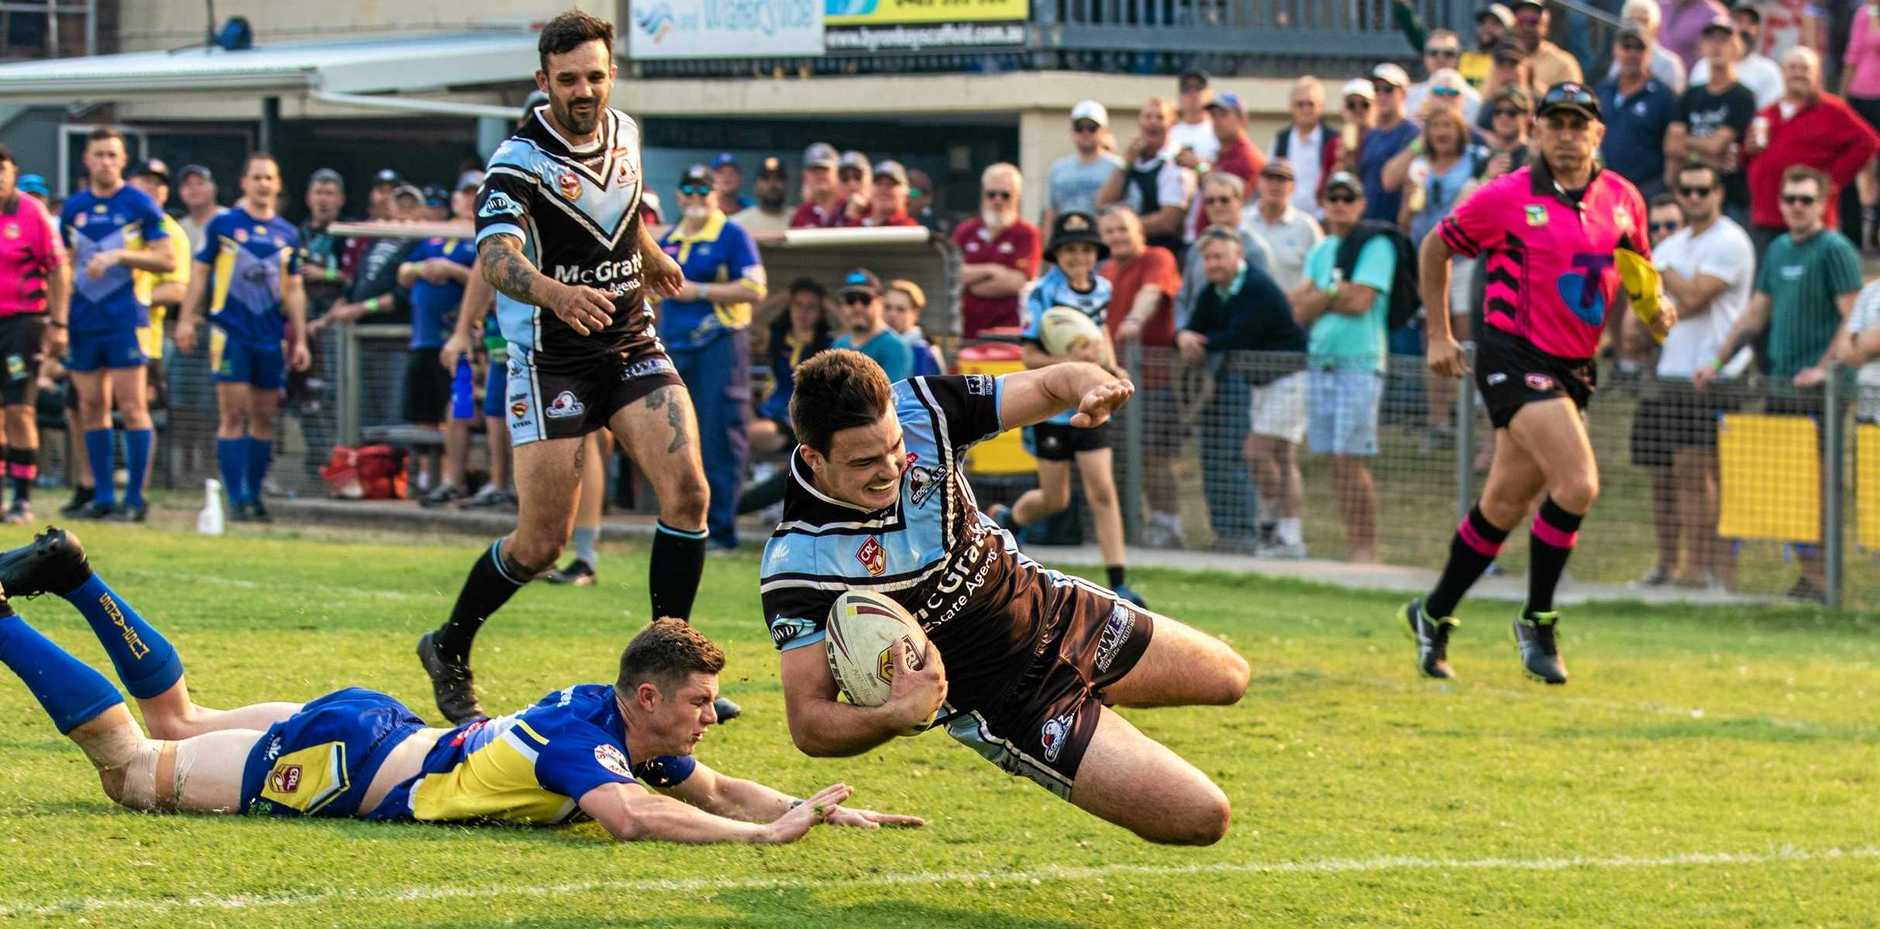 TRY TIME: Ballina centre Zac Beecher goes over for a try in the NRRRL grand final against Murwillumbah on Sunday.